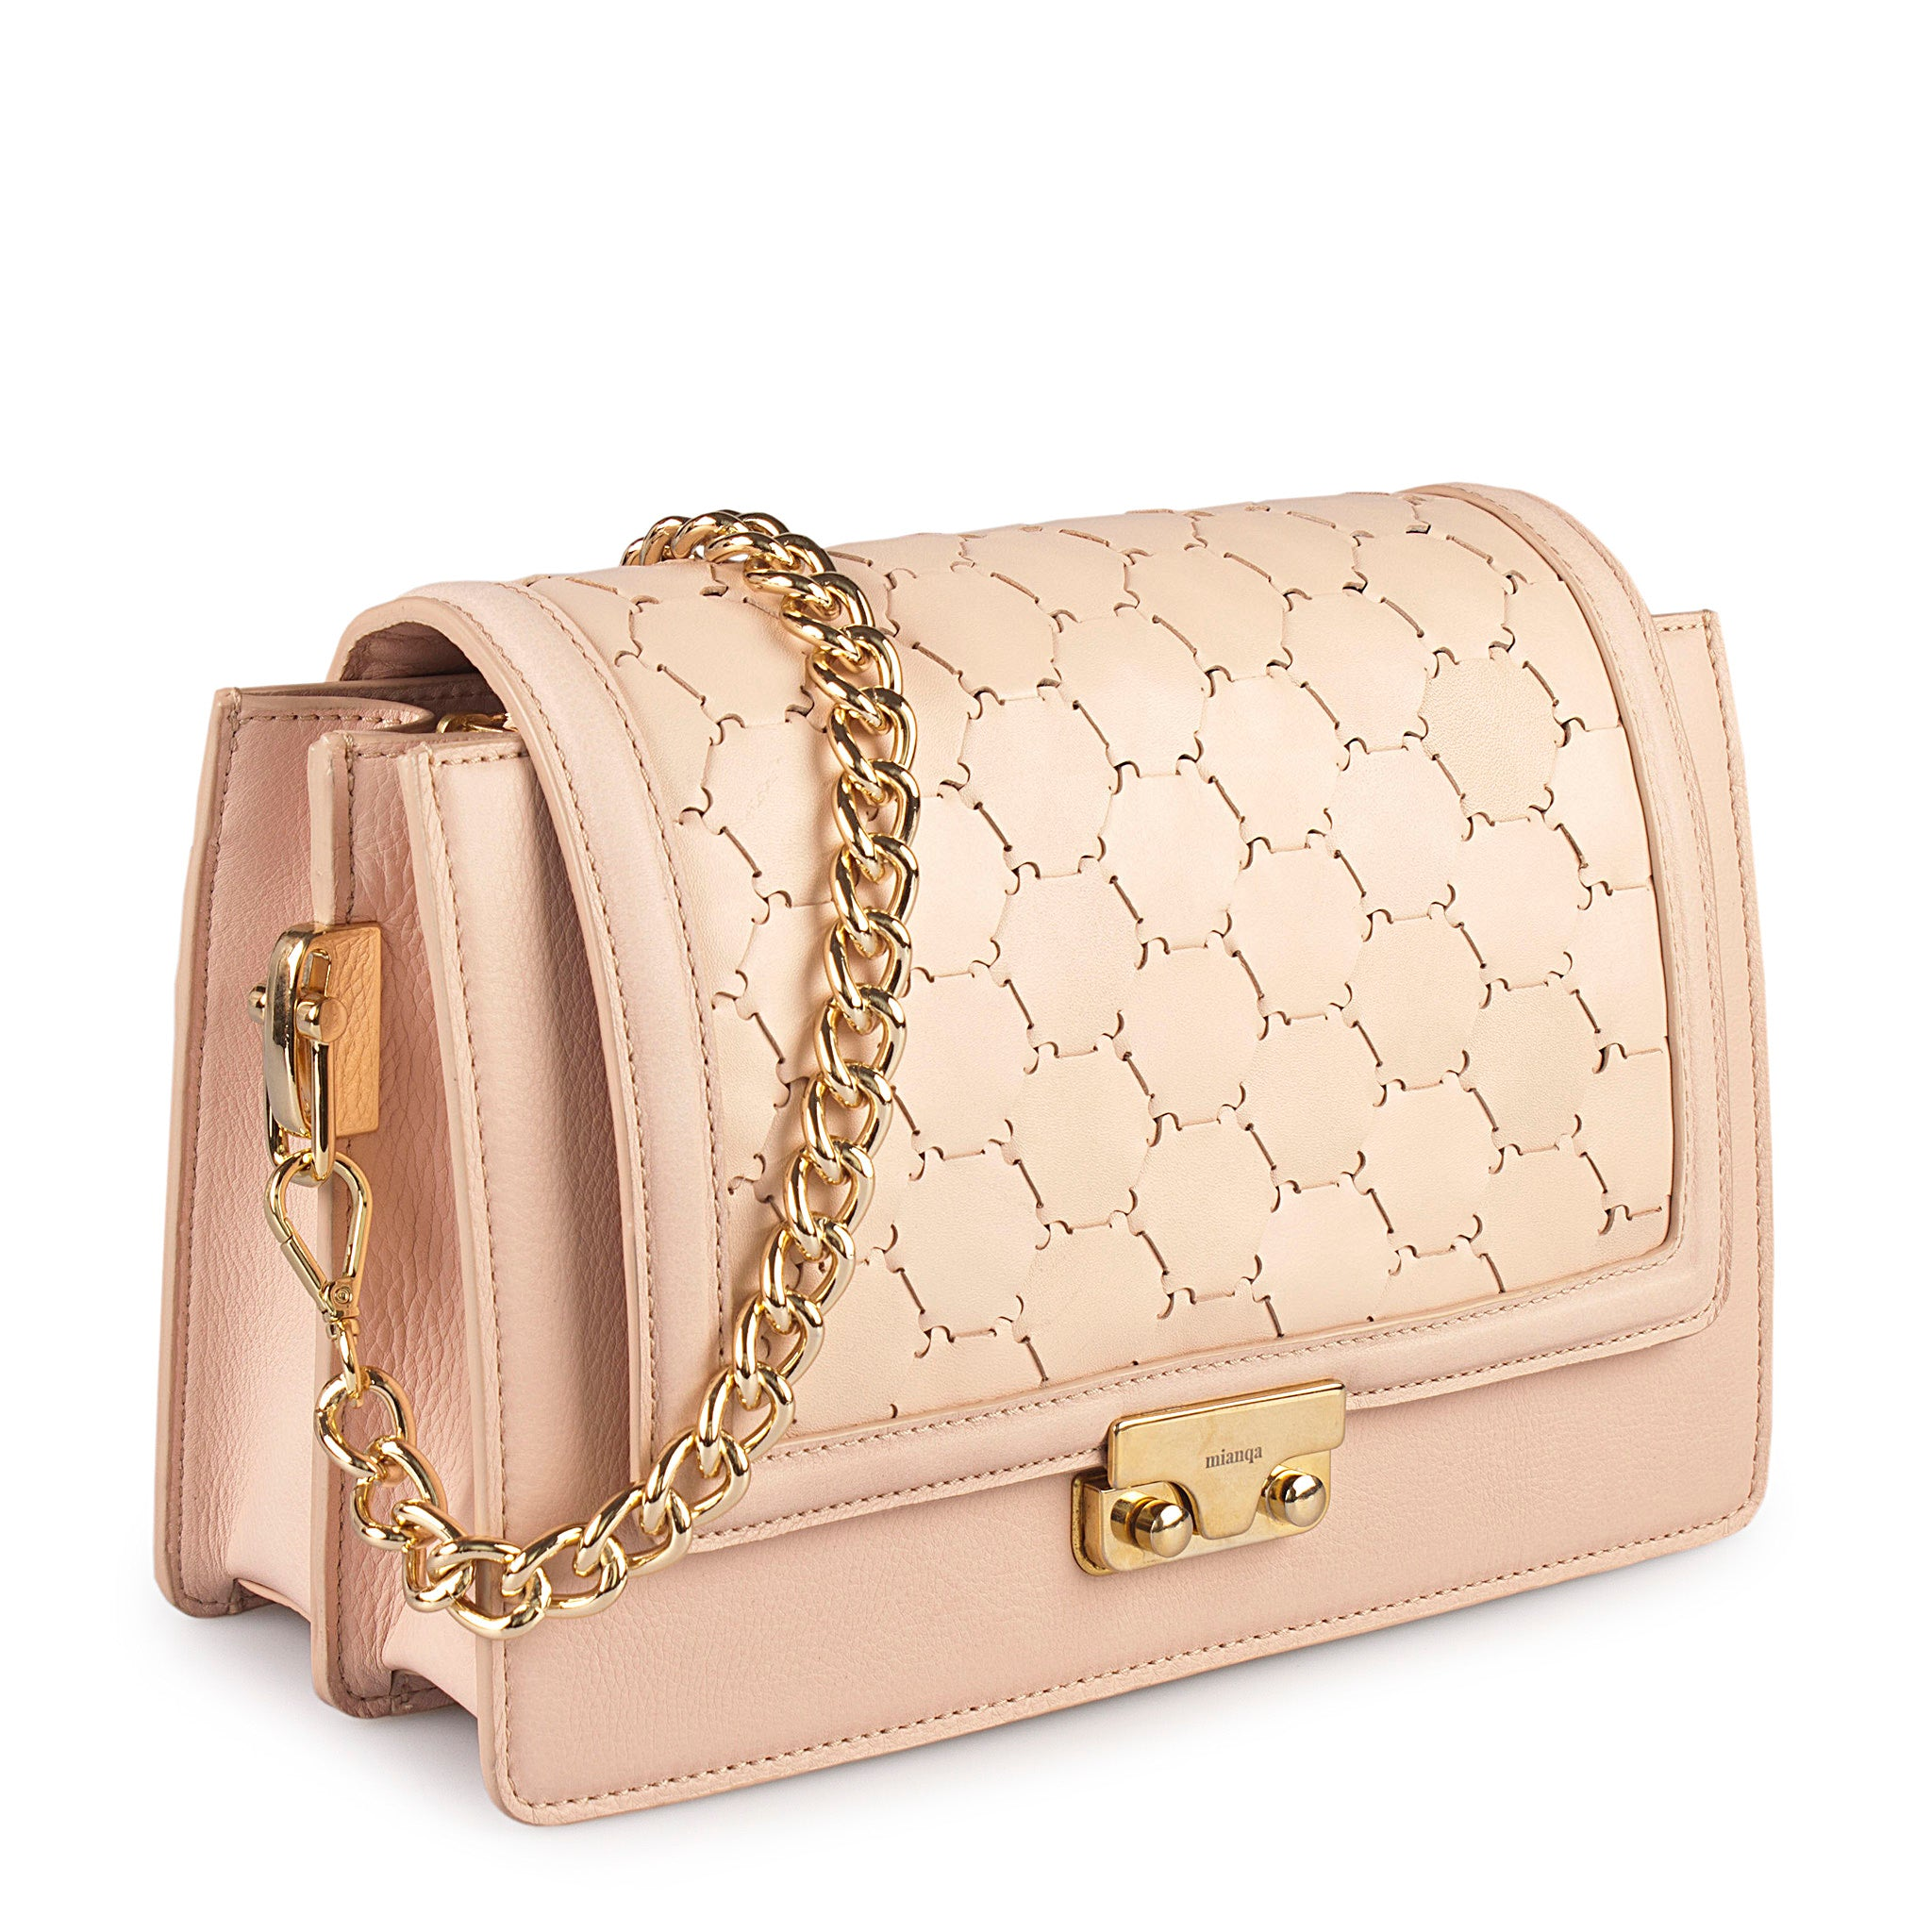 pink luxury leather crossbody bag with handwoven flap and chain handle